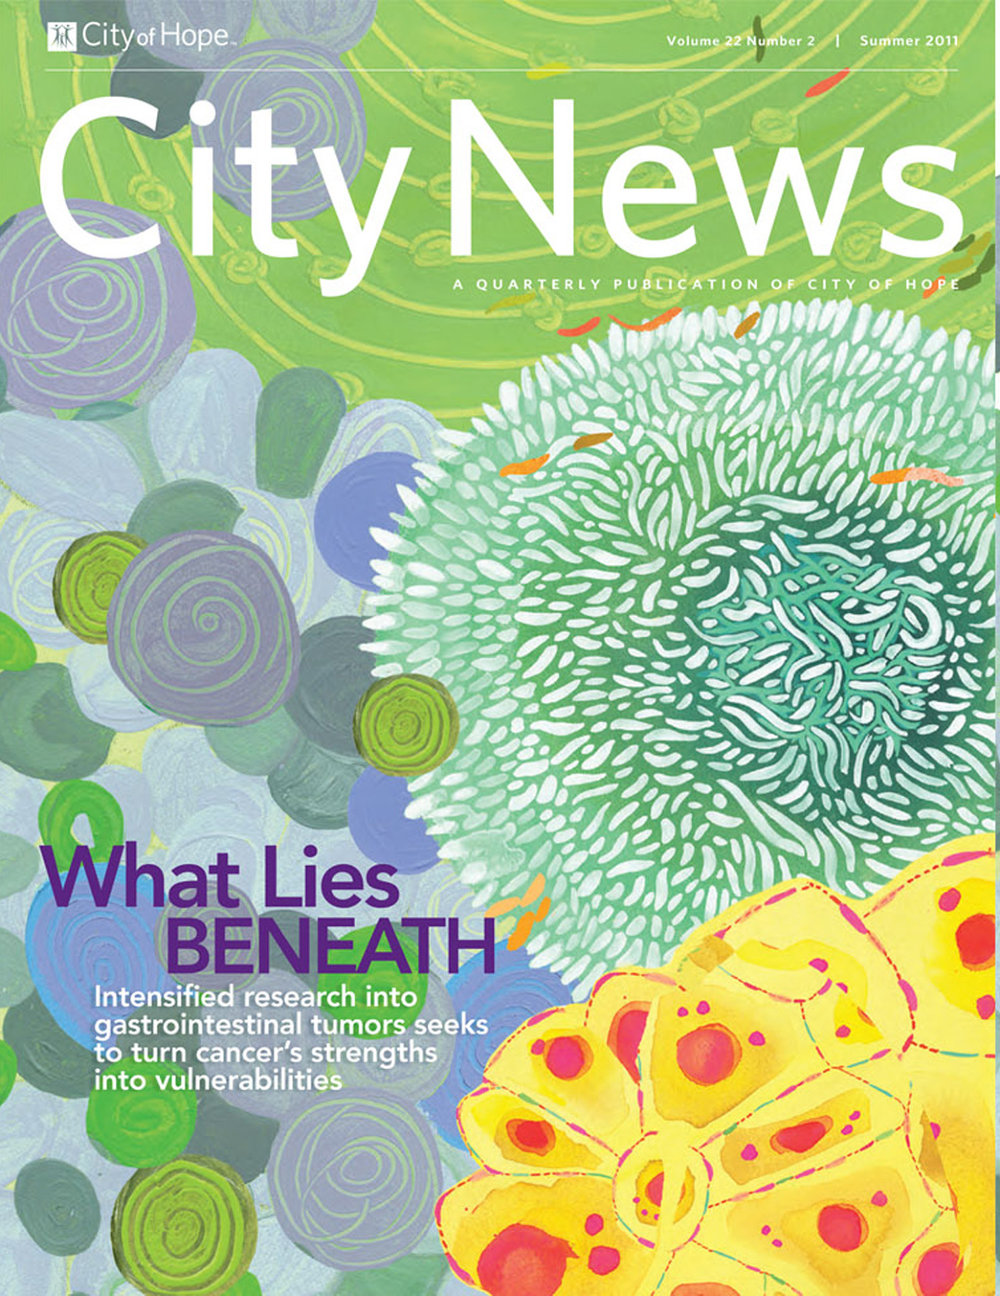 City News, a quarterly publication of City of Hope